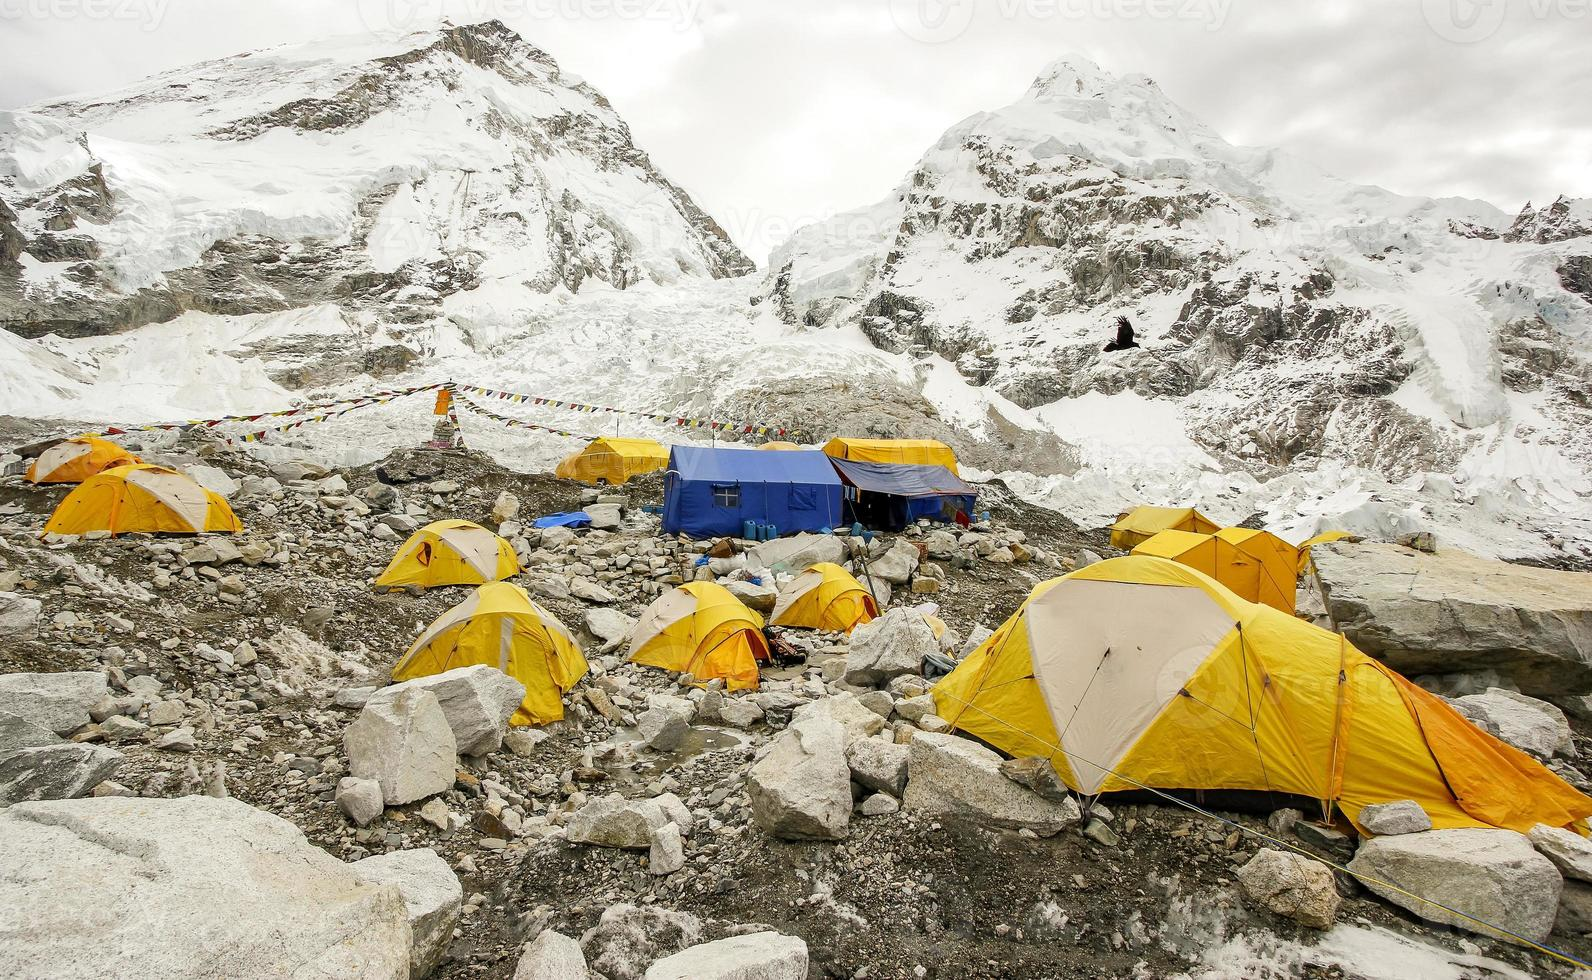 Tents in Everest Base Camp, cloudy day. photo